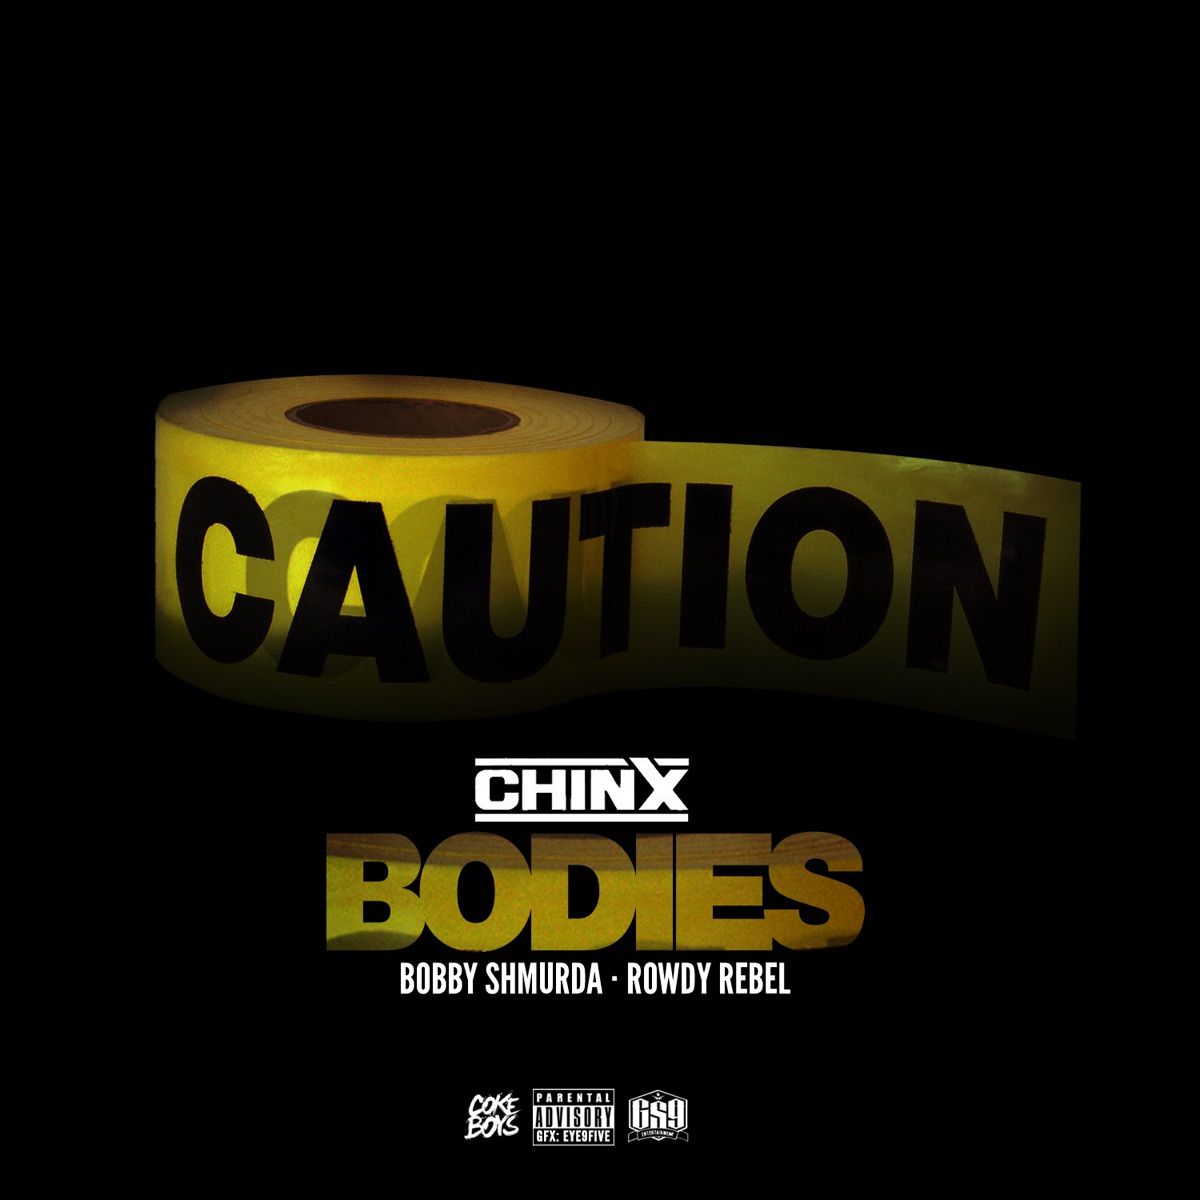 Bodies Album Cover by Chinx